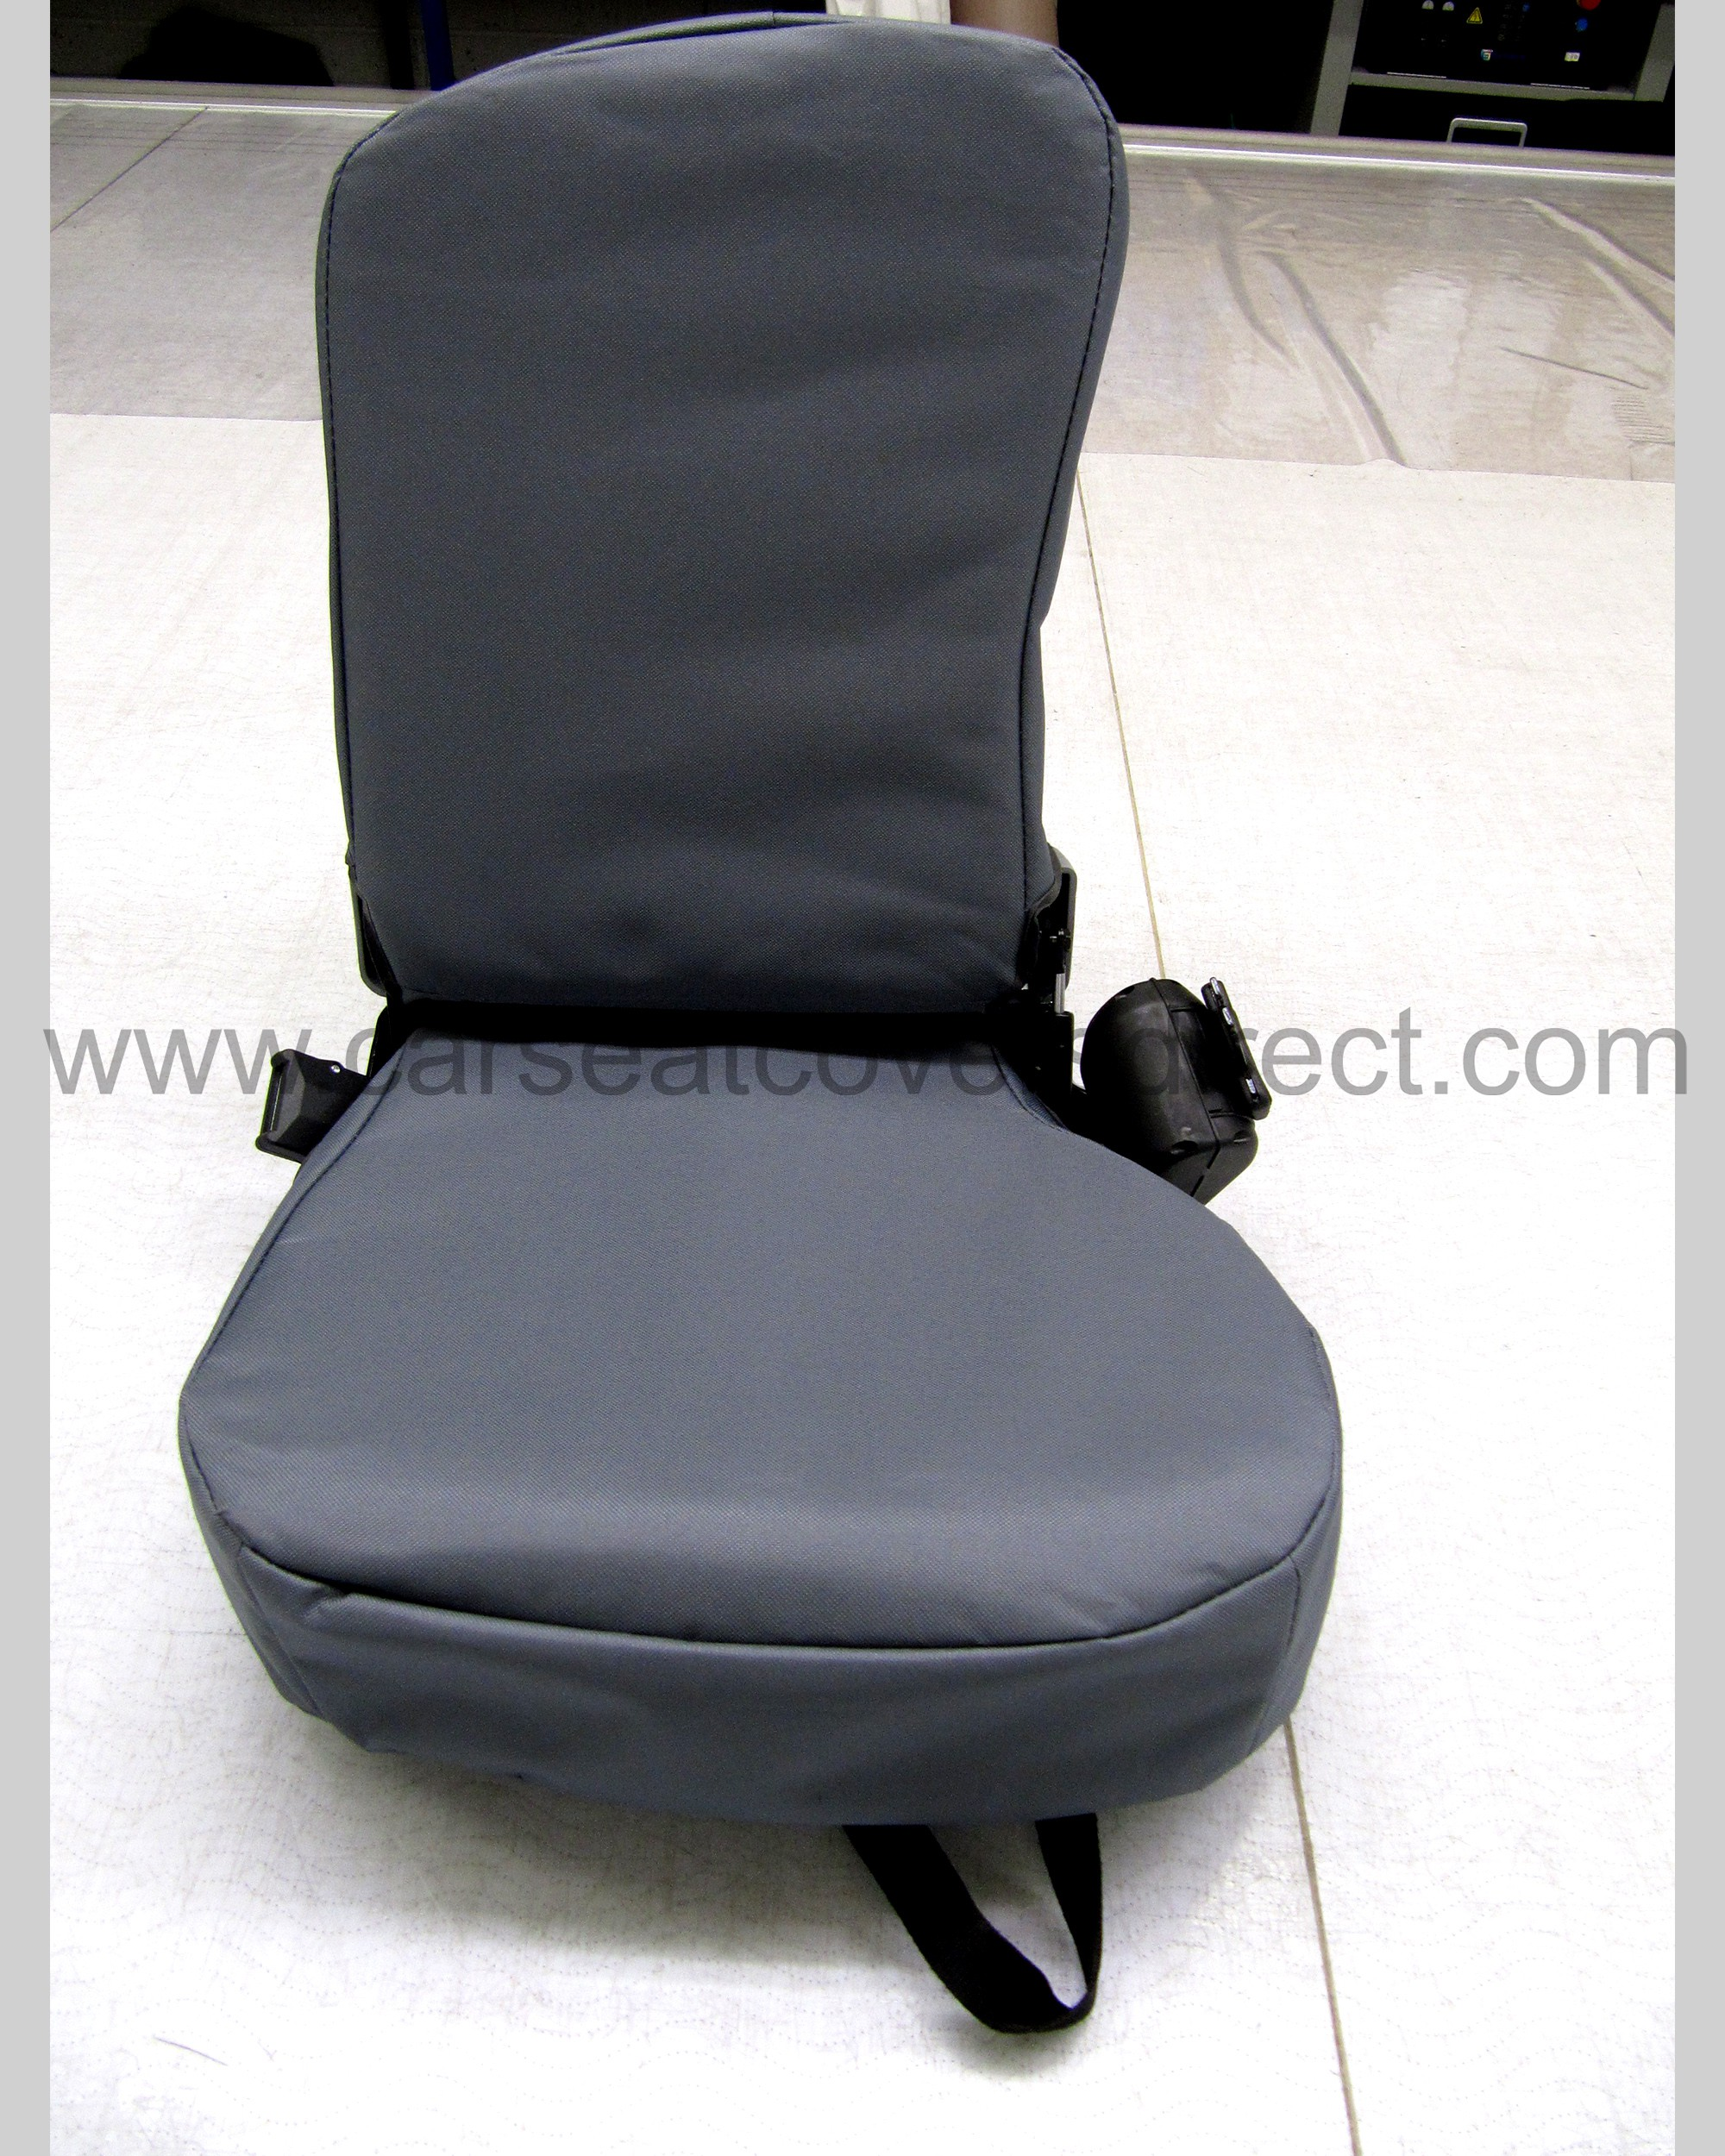 New Holland T6 Series Seat Cover